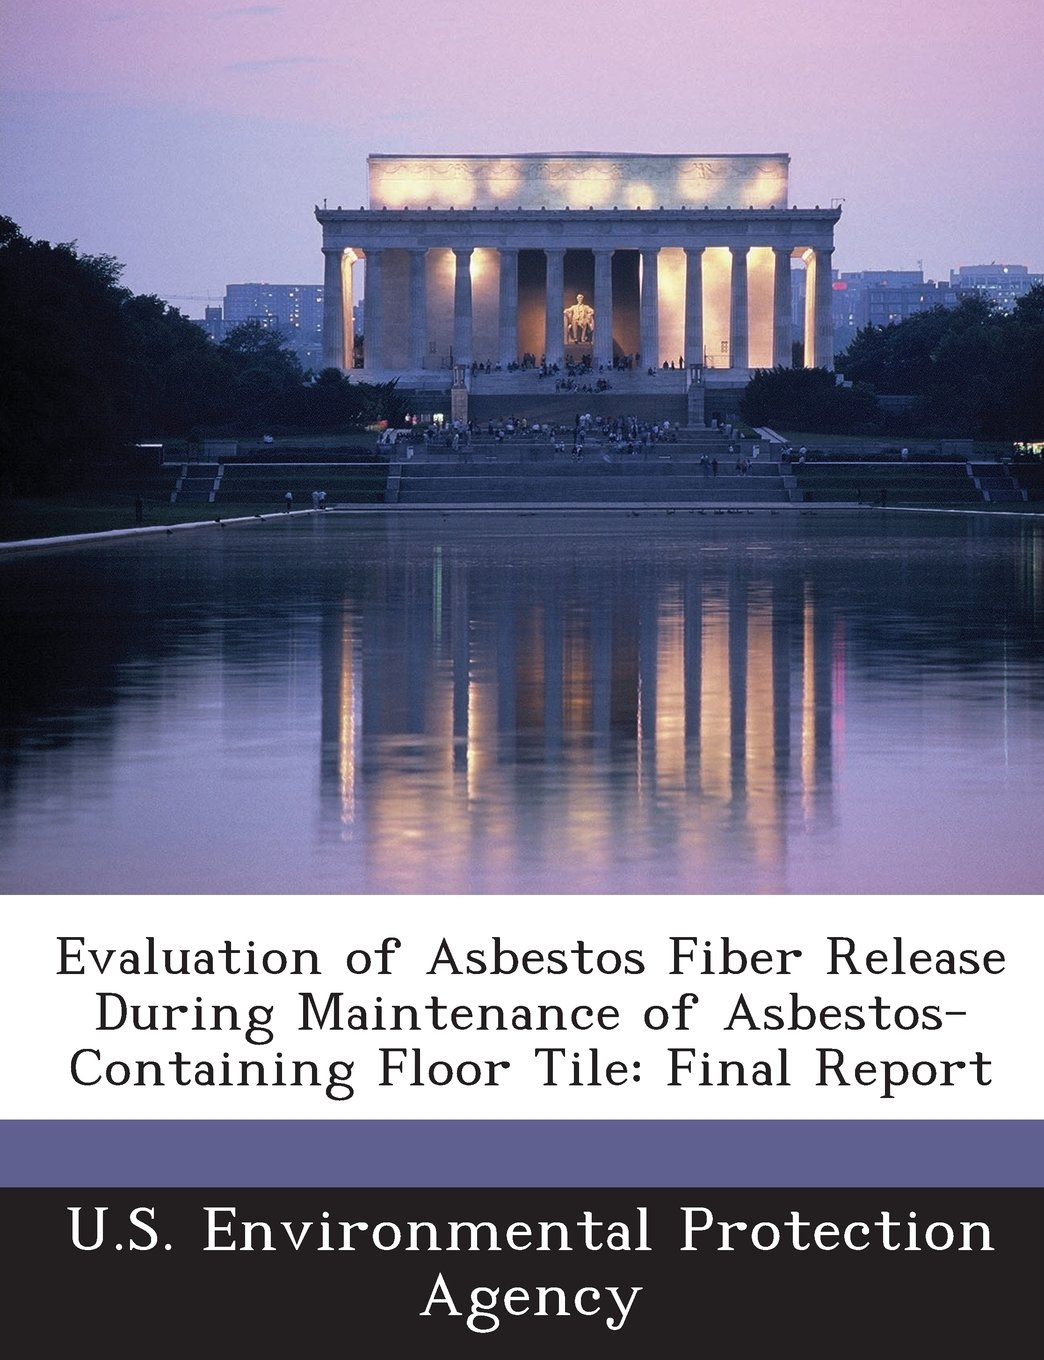 Download Evaluation of Asbestos Fiber Release During Maintenance of Asbestos-Containing Floor Tile: Final Report PDF